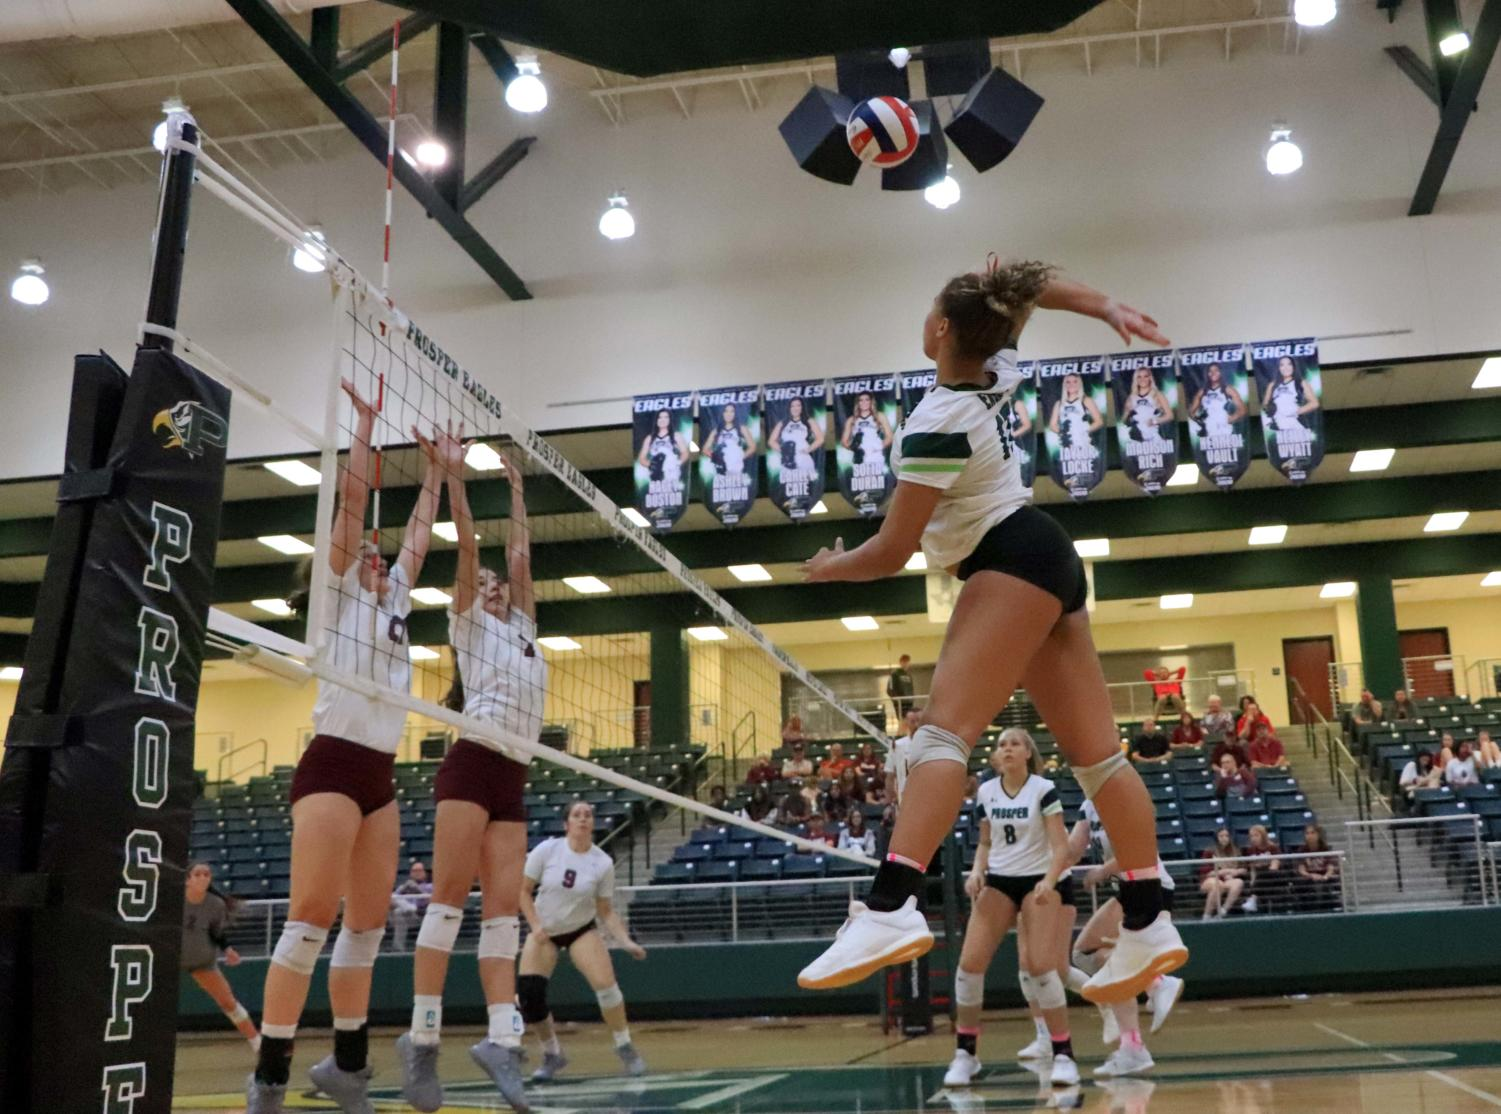 Varsity setter Mackenzie Jefferson prepares for a kill. She helped lead the team to victory on Friday, Oct. 4 at the Prosper Eagle Arena. In Friday's match against Plano Senior, Mackenzie racked up seven digs and 15 assists.